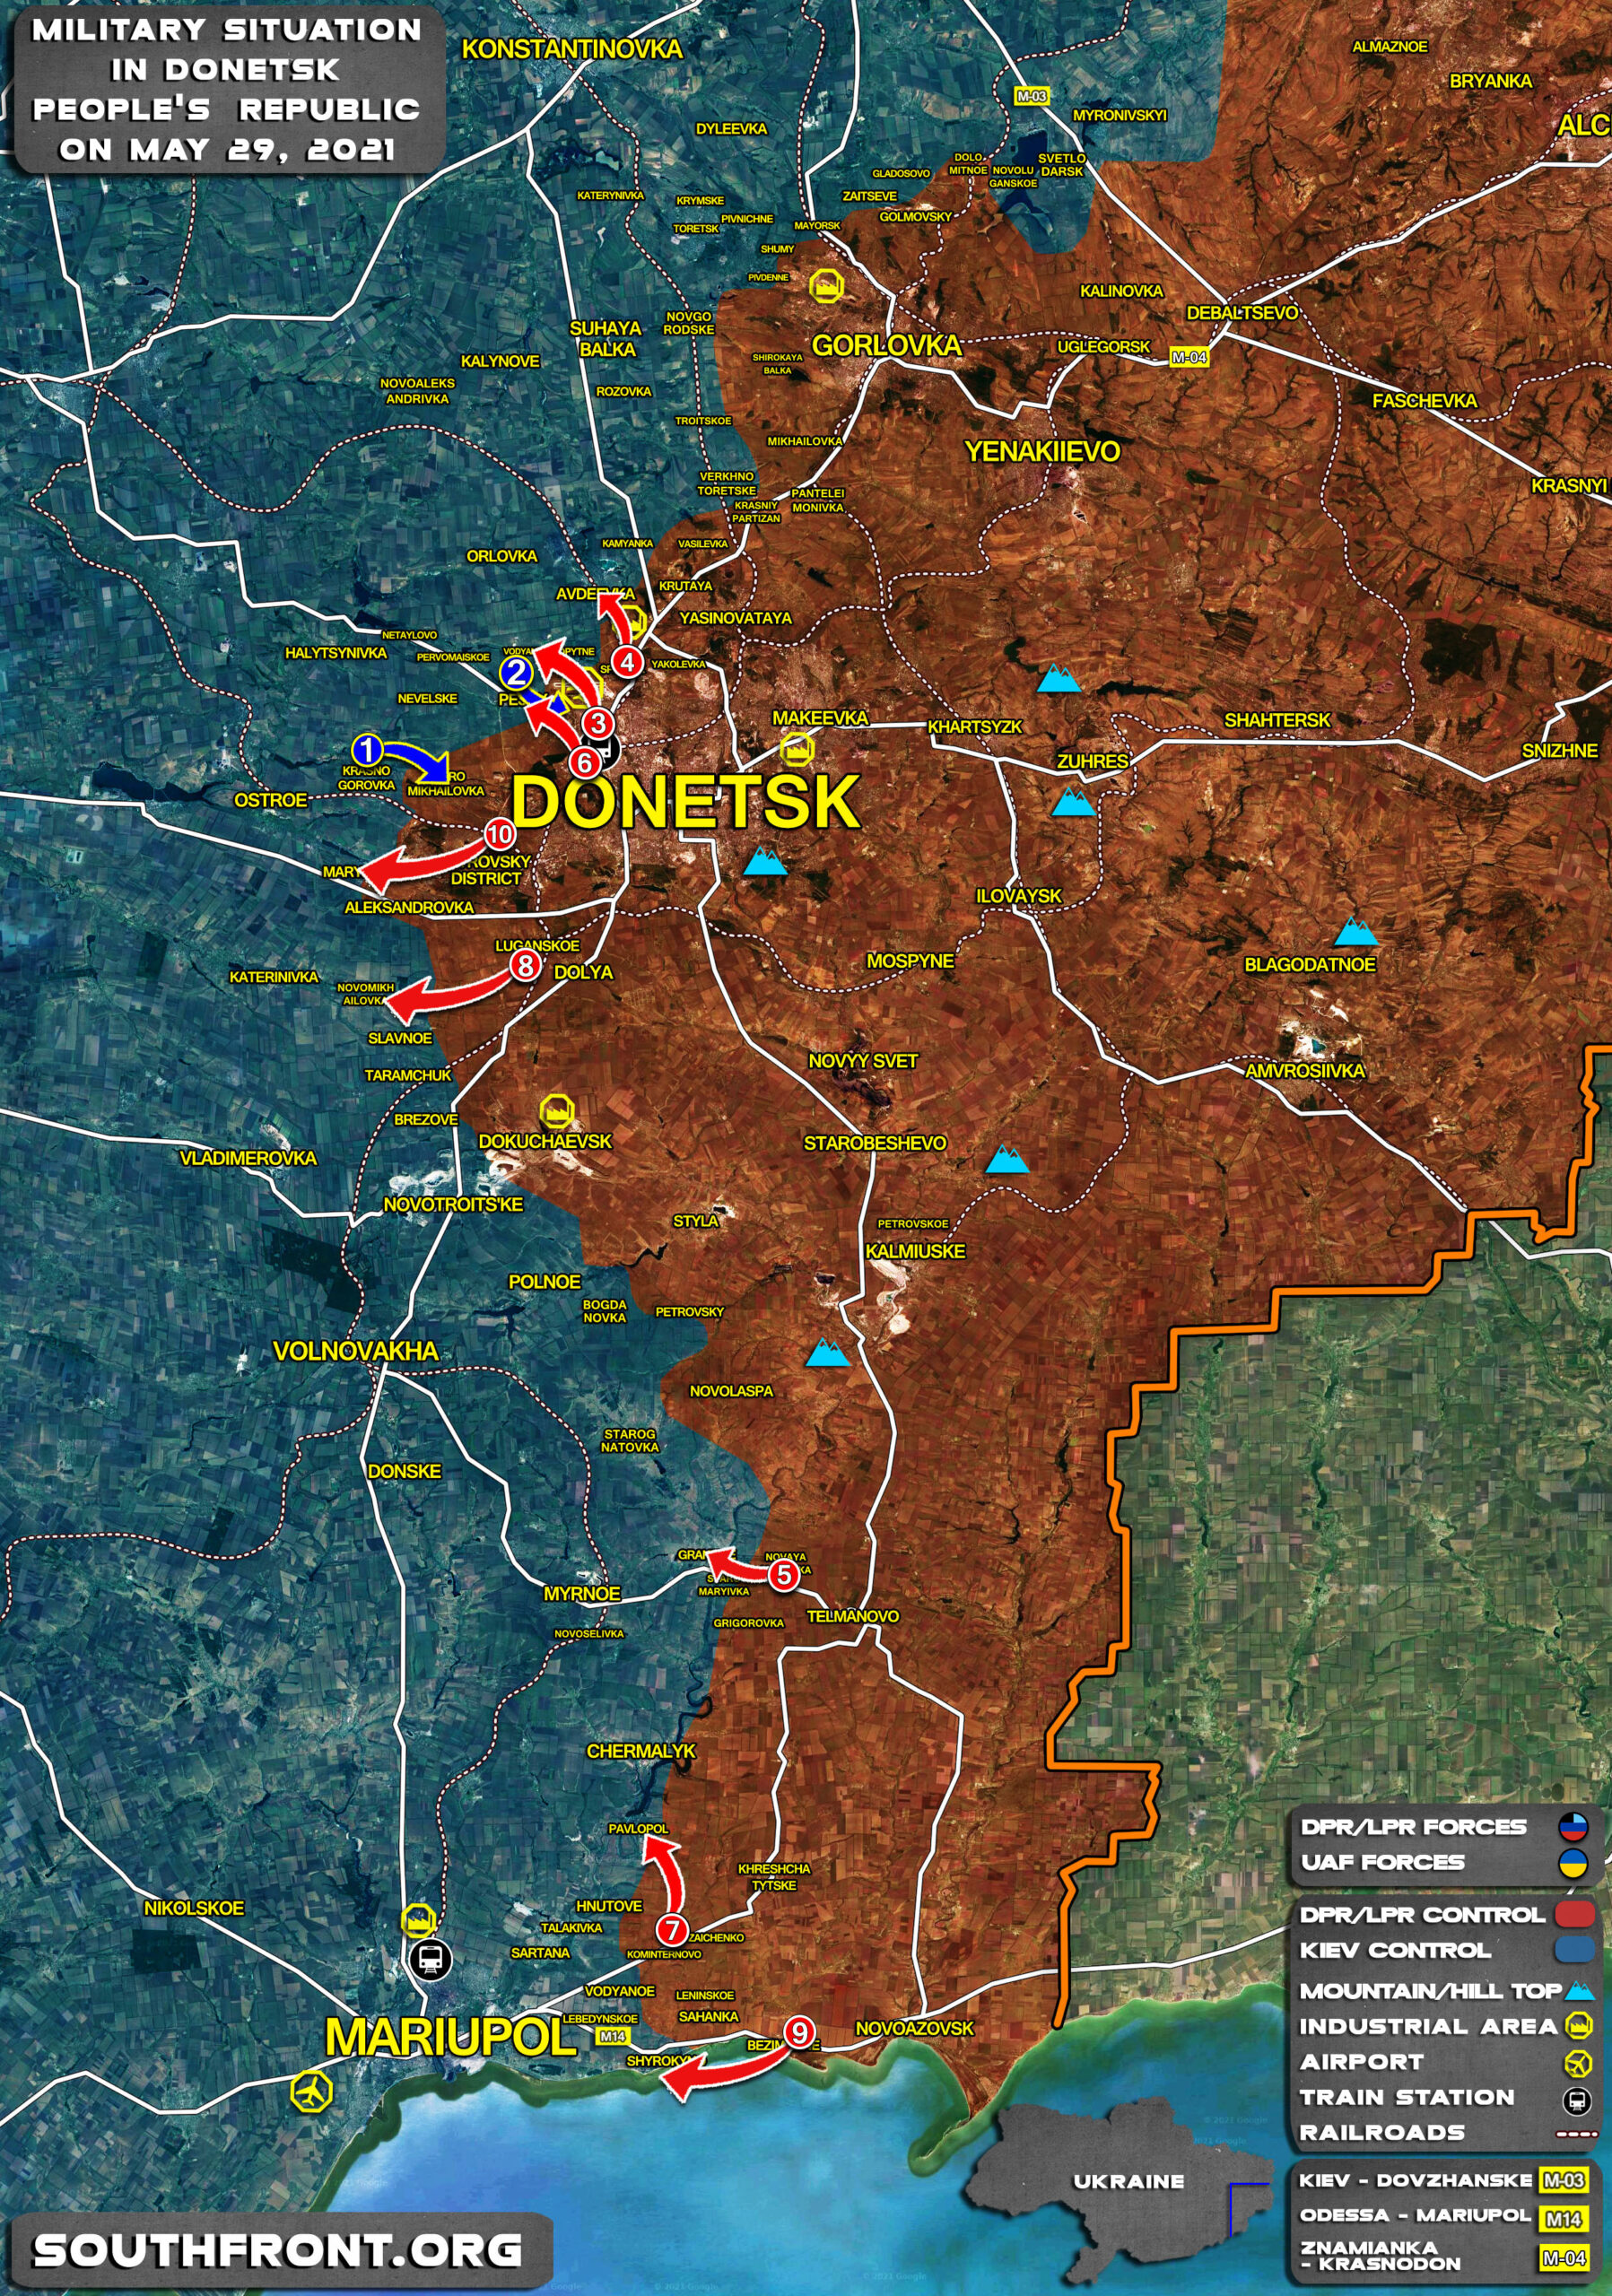 Military Situation In Donetsk People's Republic On May 29, 2021 (Map Update)